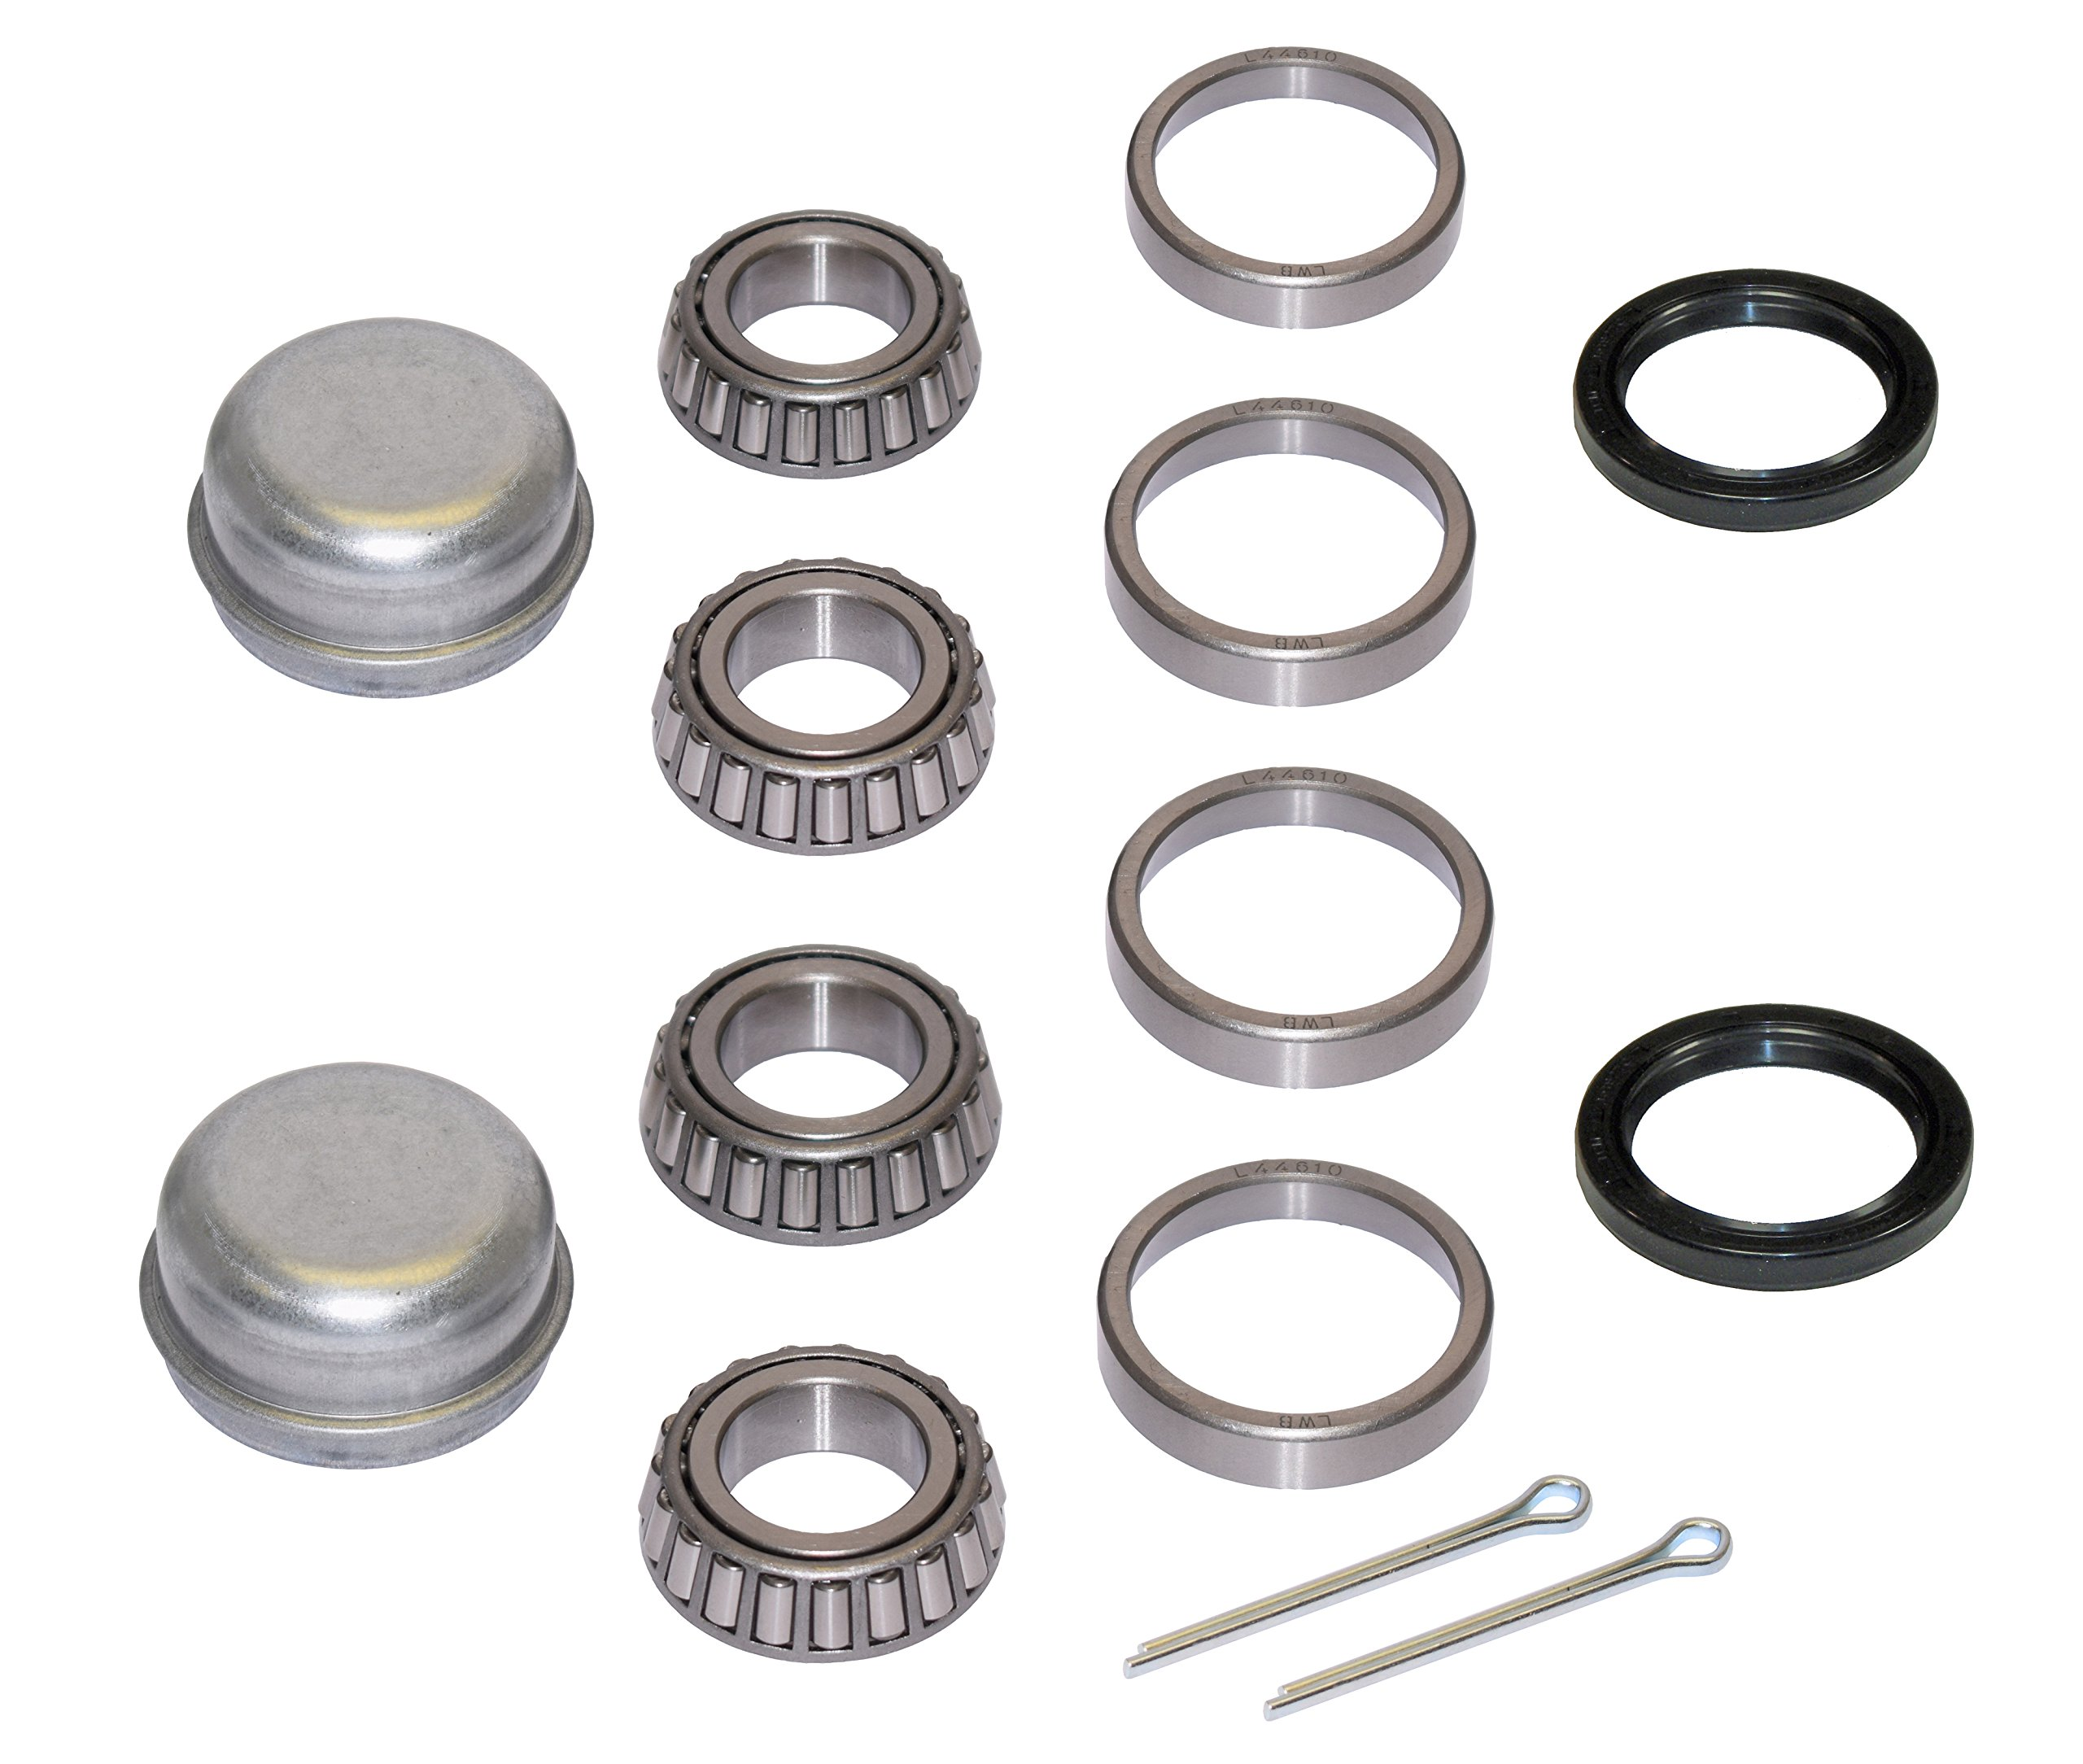 Pair of Trailer Bearing Repair Kits for 1-1/16 Inch Straight Spindles by Rigid Hitch